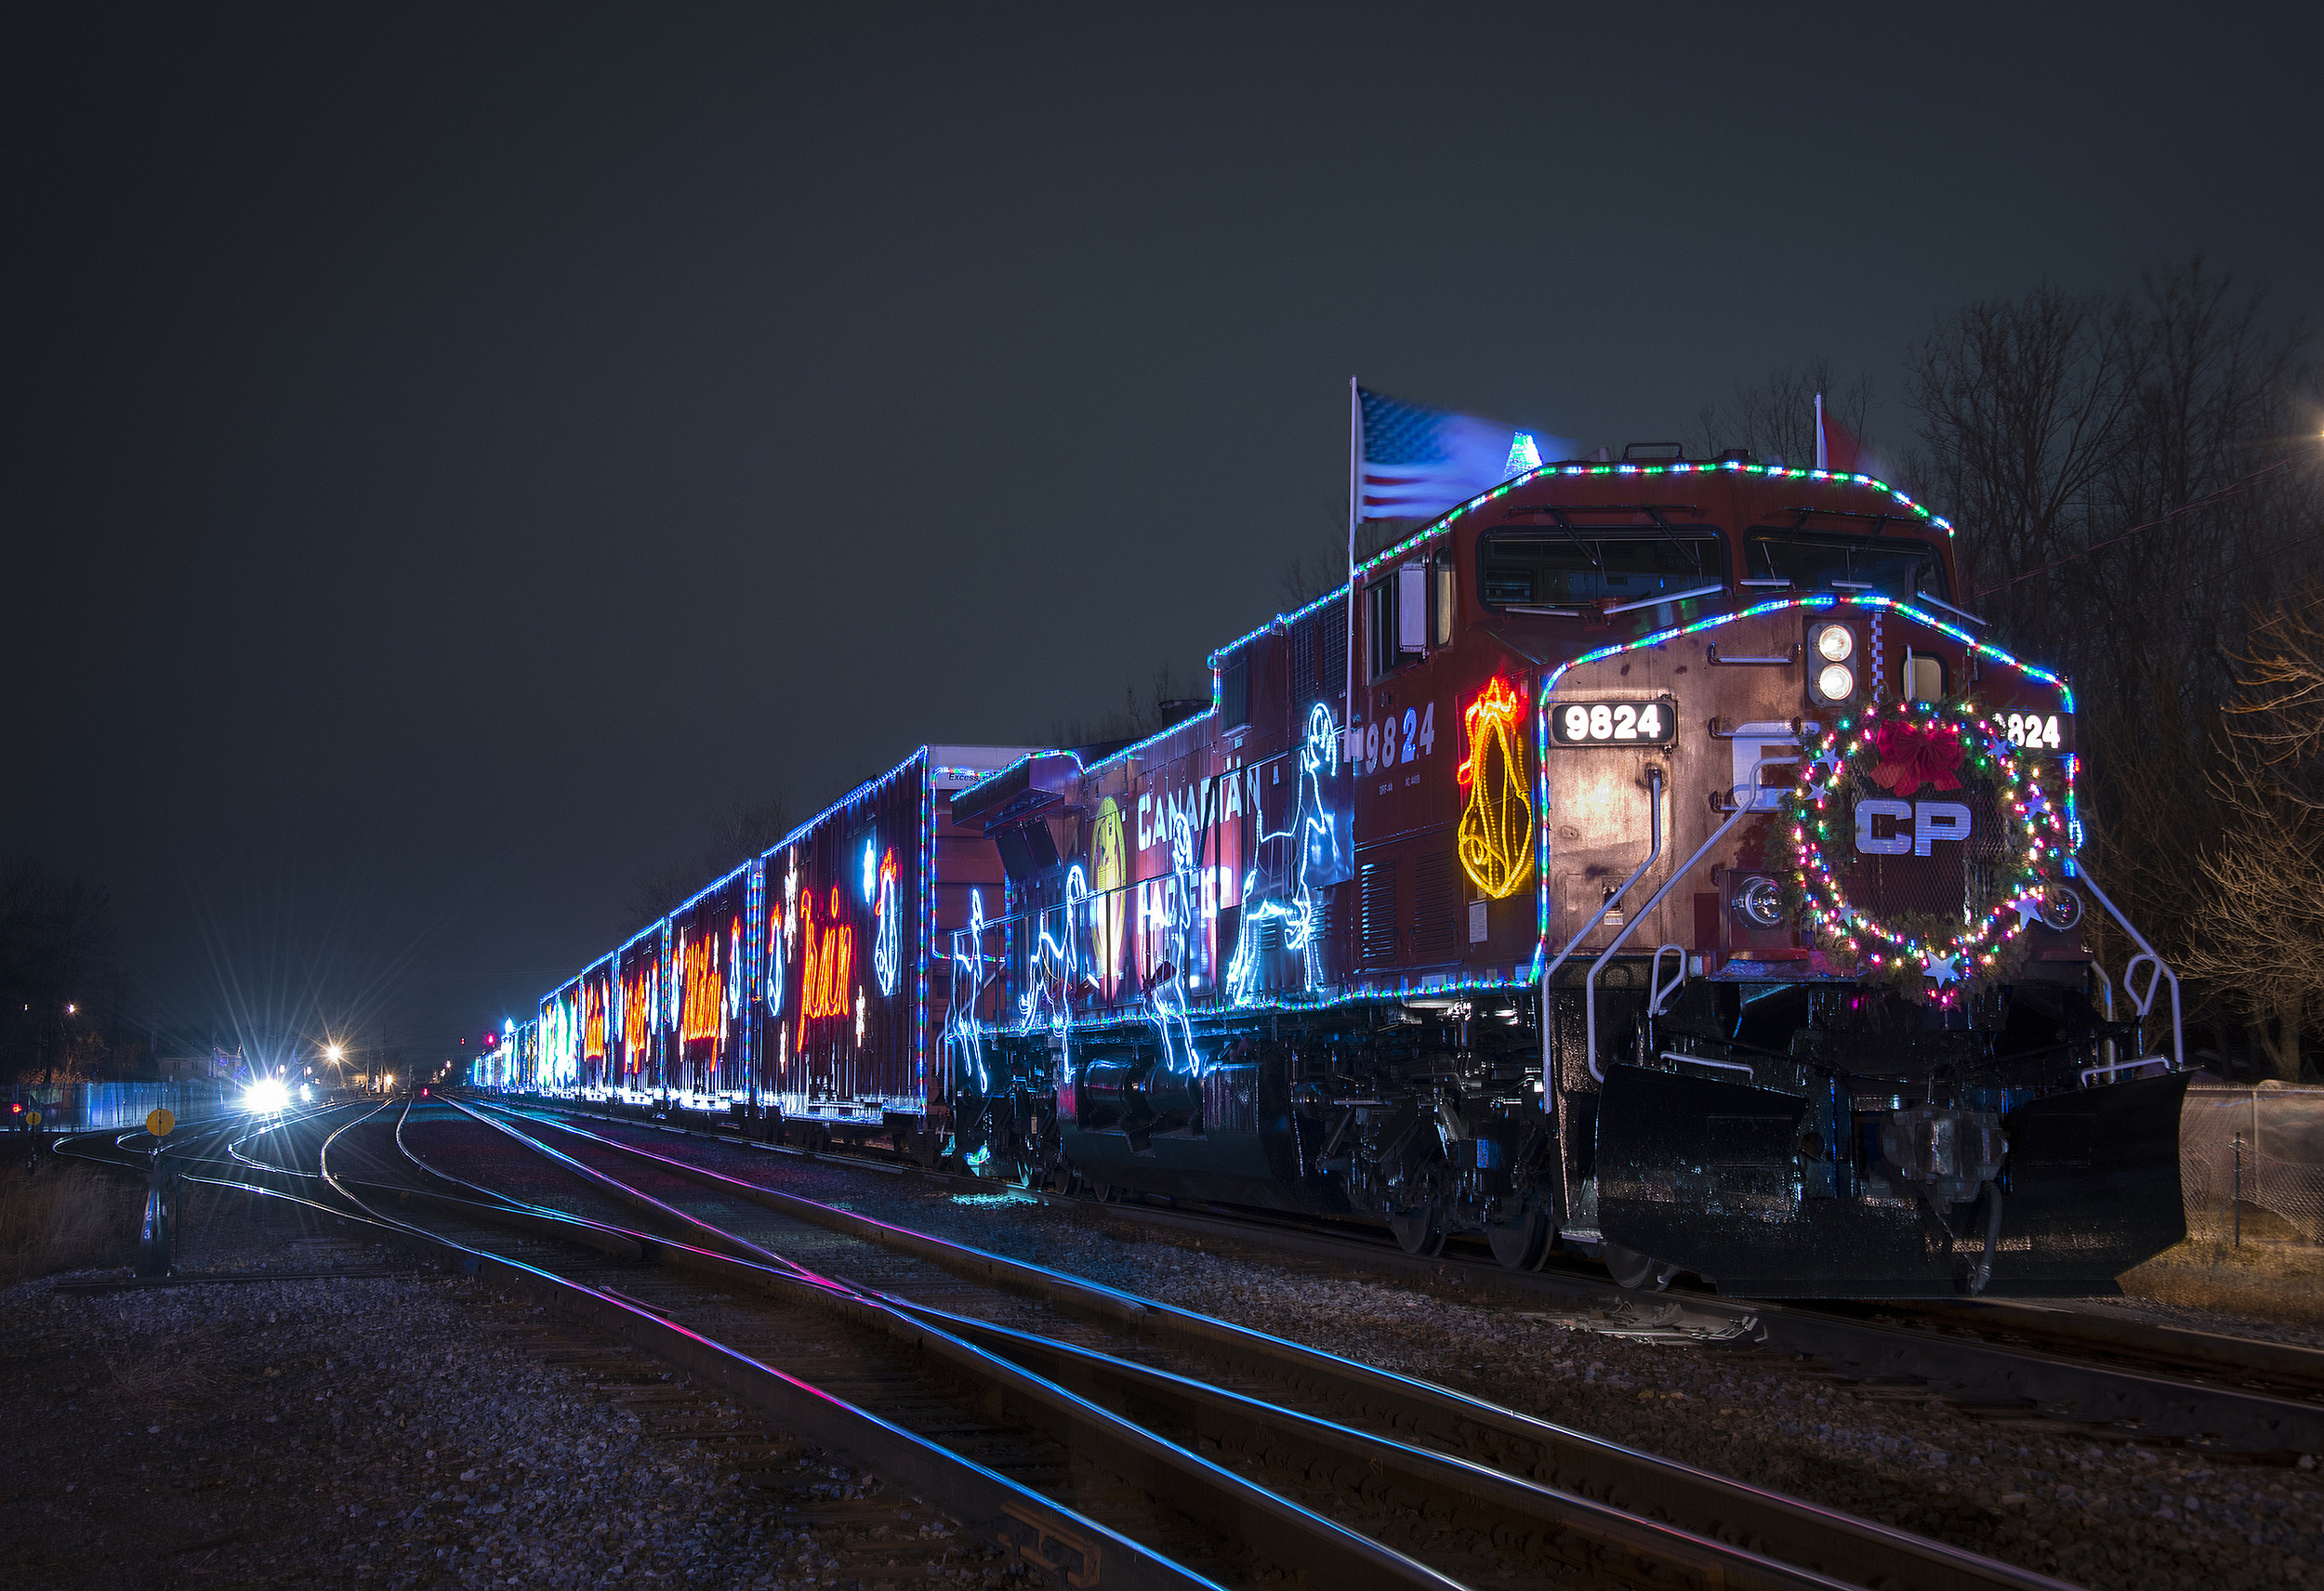 Download 2014 canadian pacific holiday train mp4 3gp 4k hd mobile videos play free